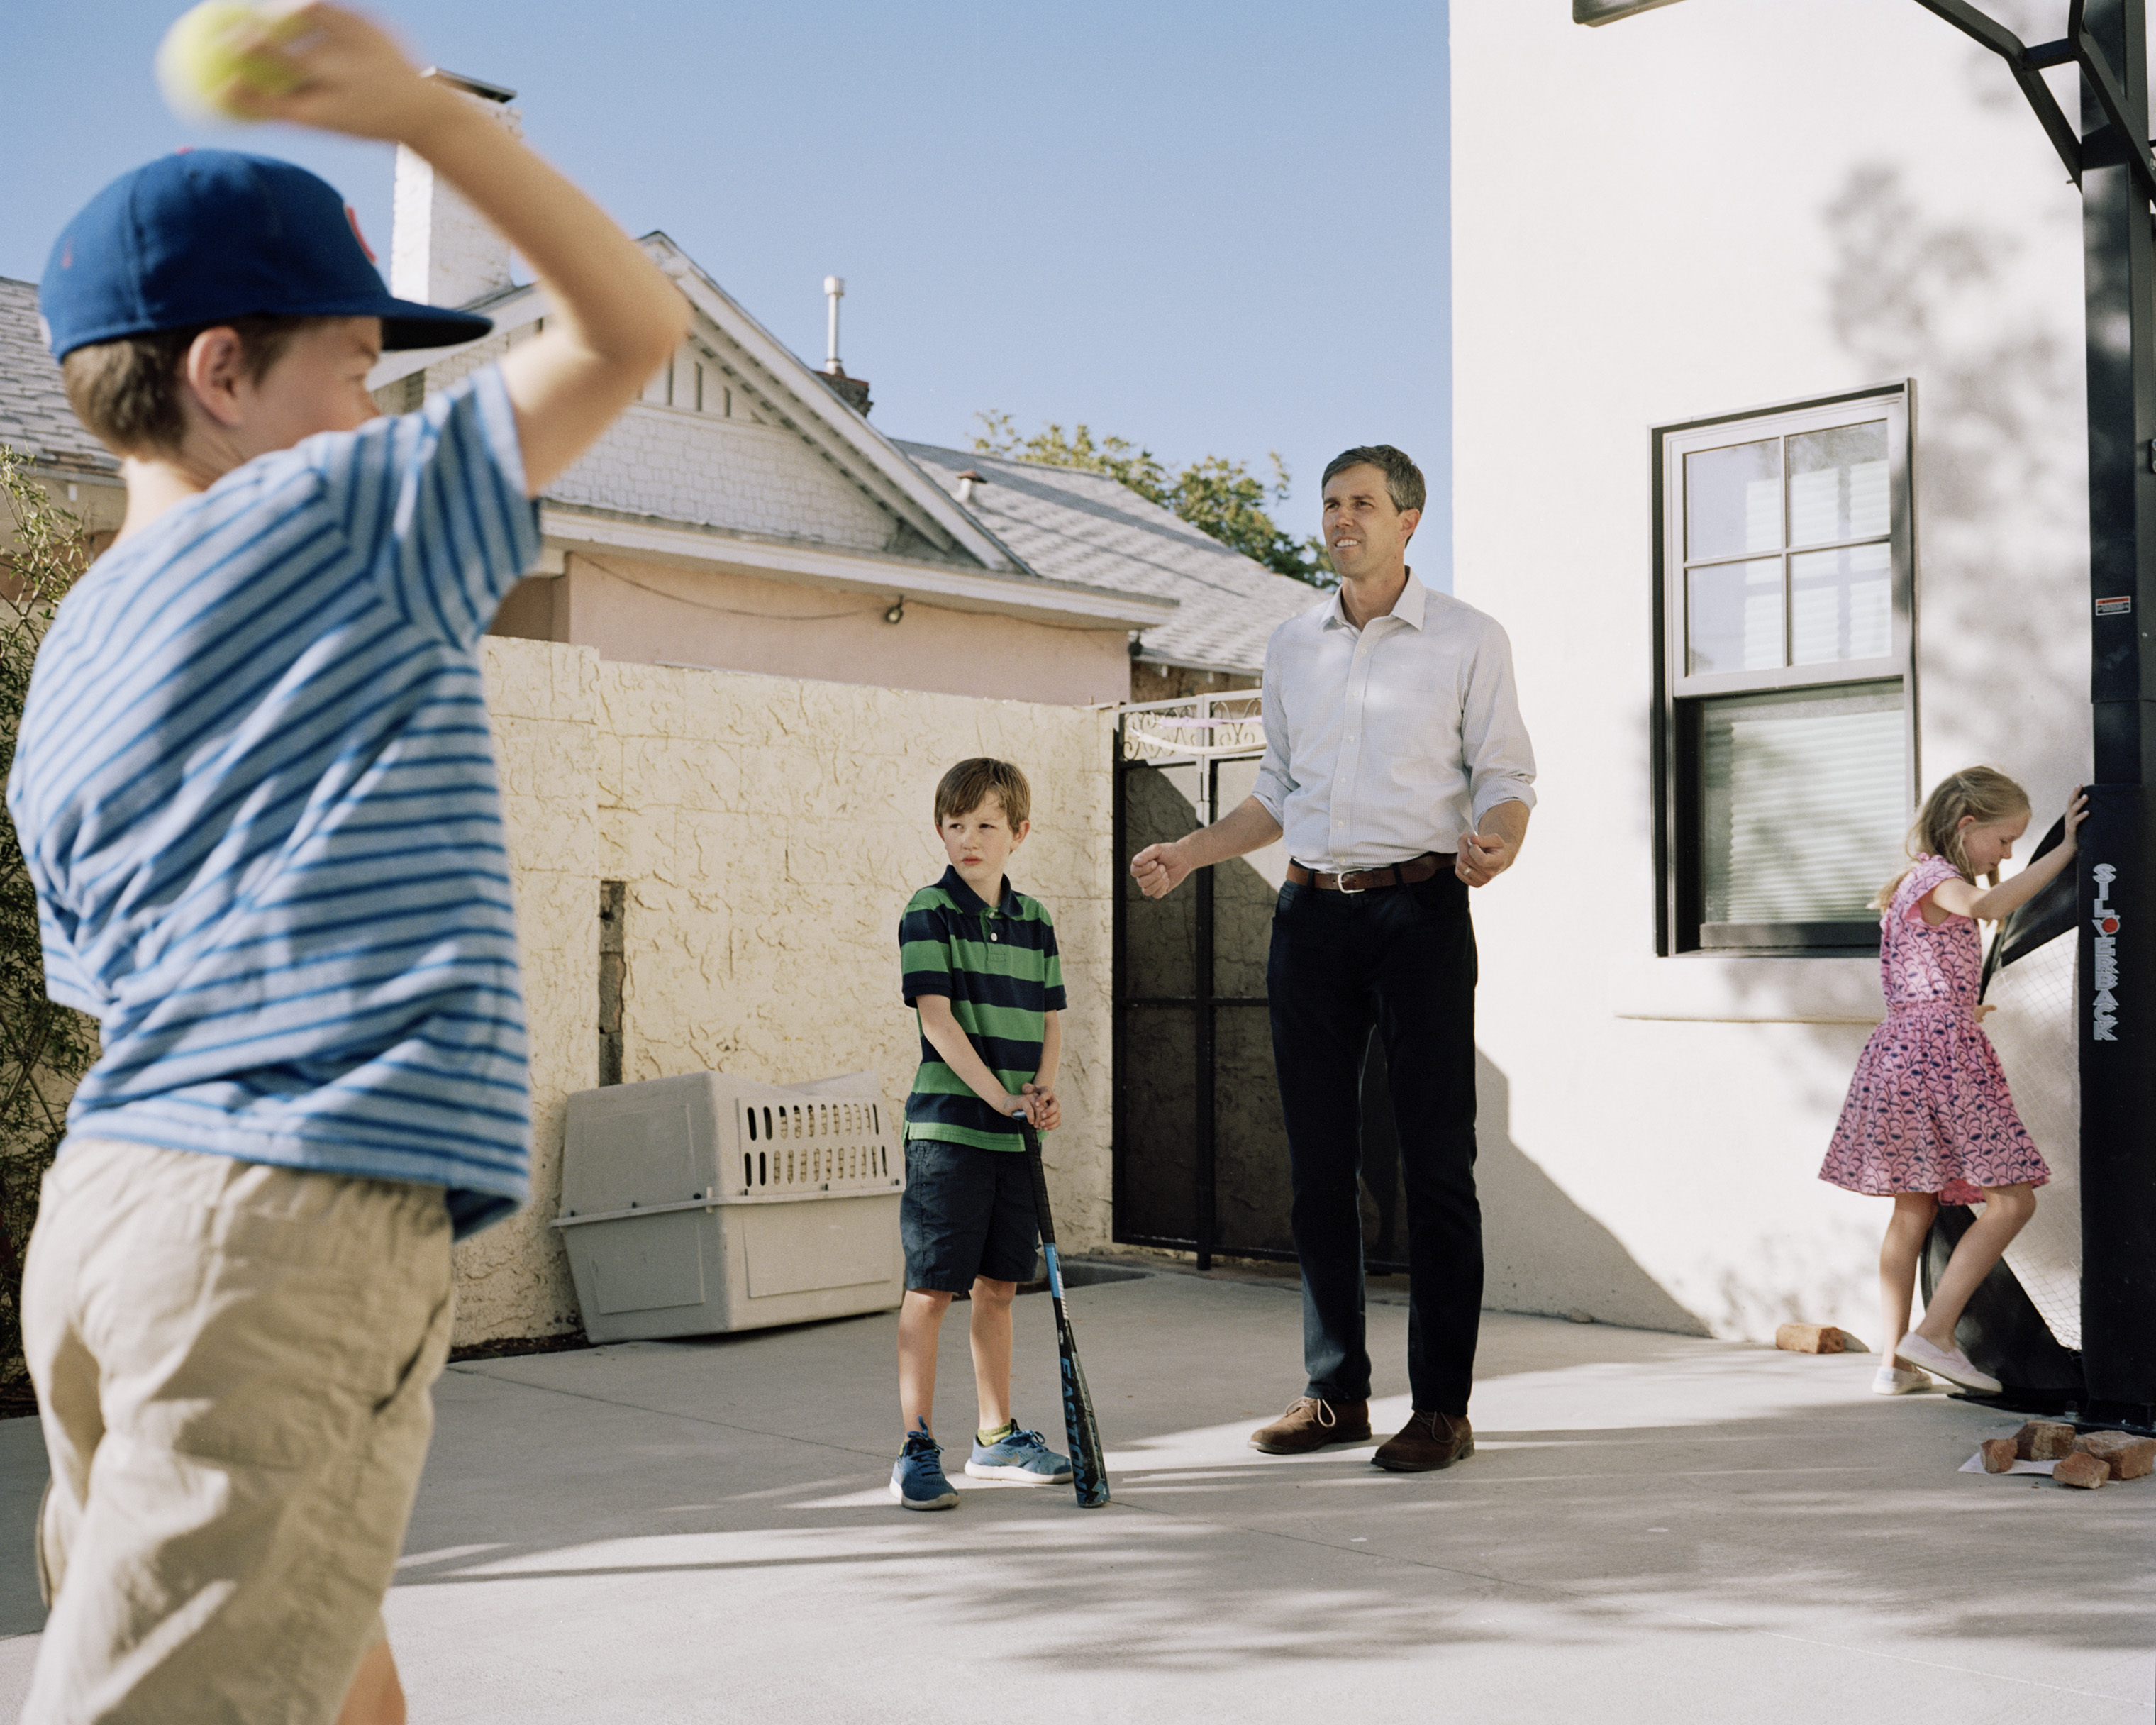 O'Rourke plays with his kids outside of his home.